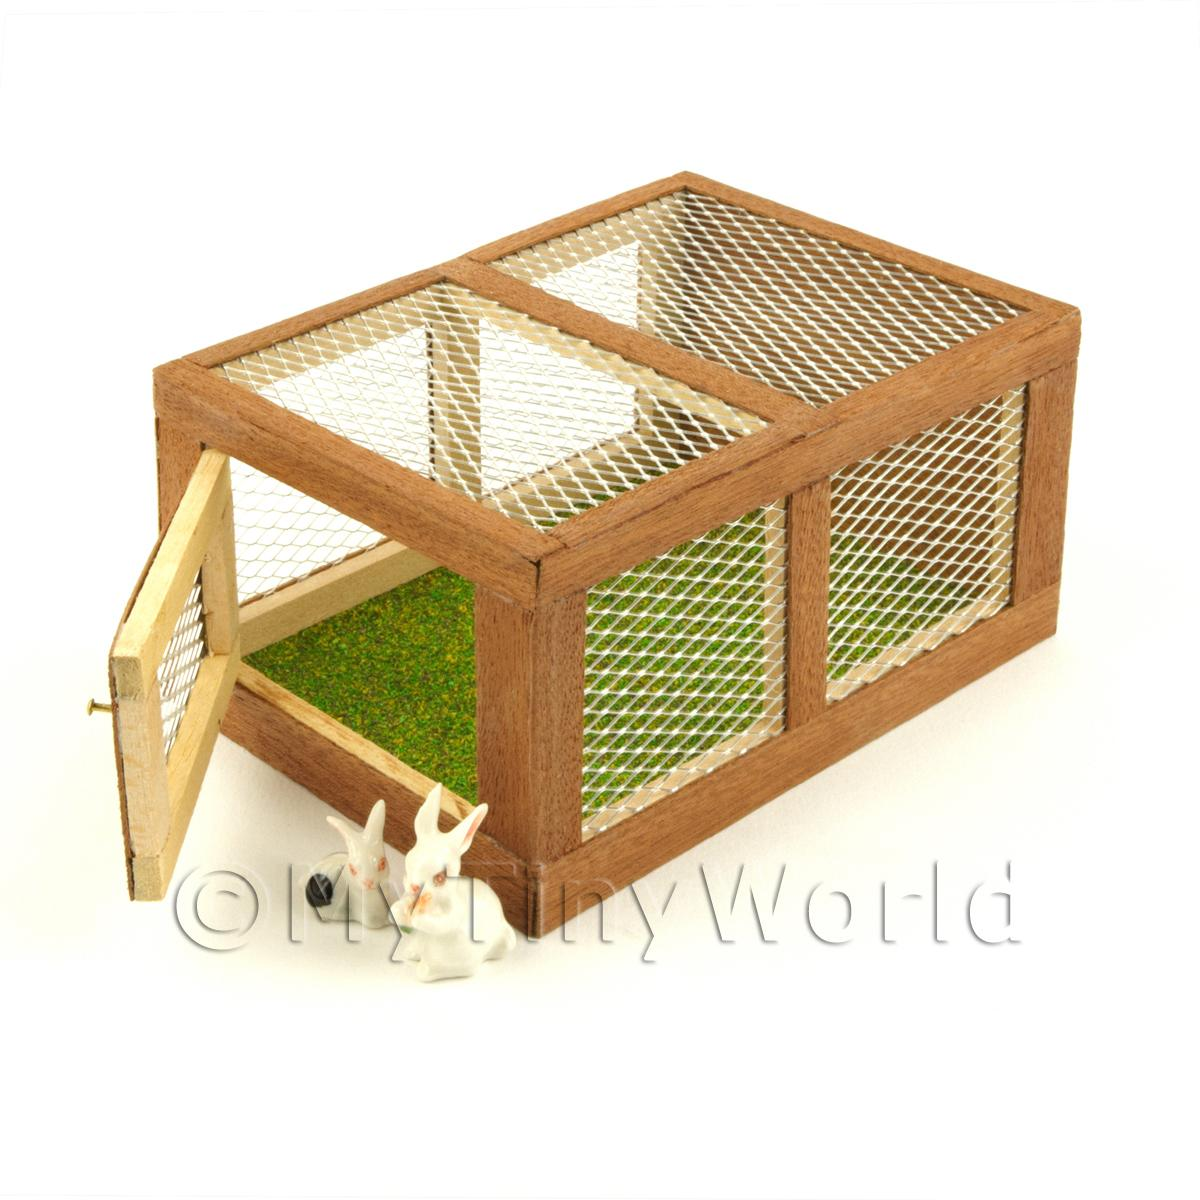 Miniature Wooden Rabbit Hutch With Front Opening Door And 2 Rabbits